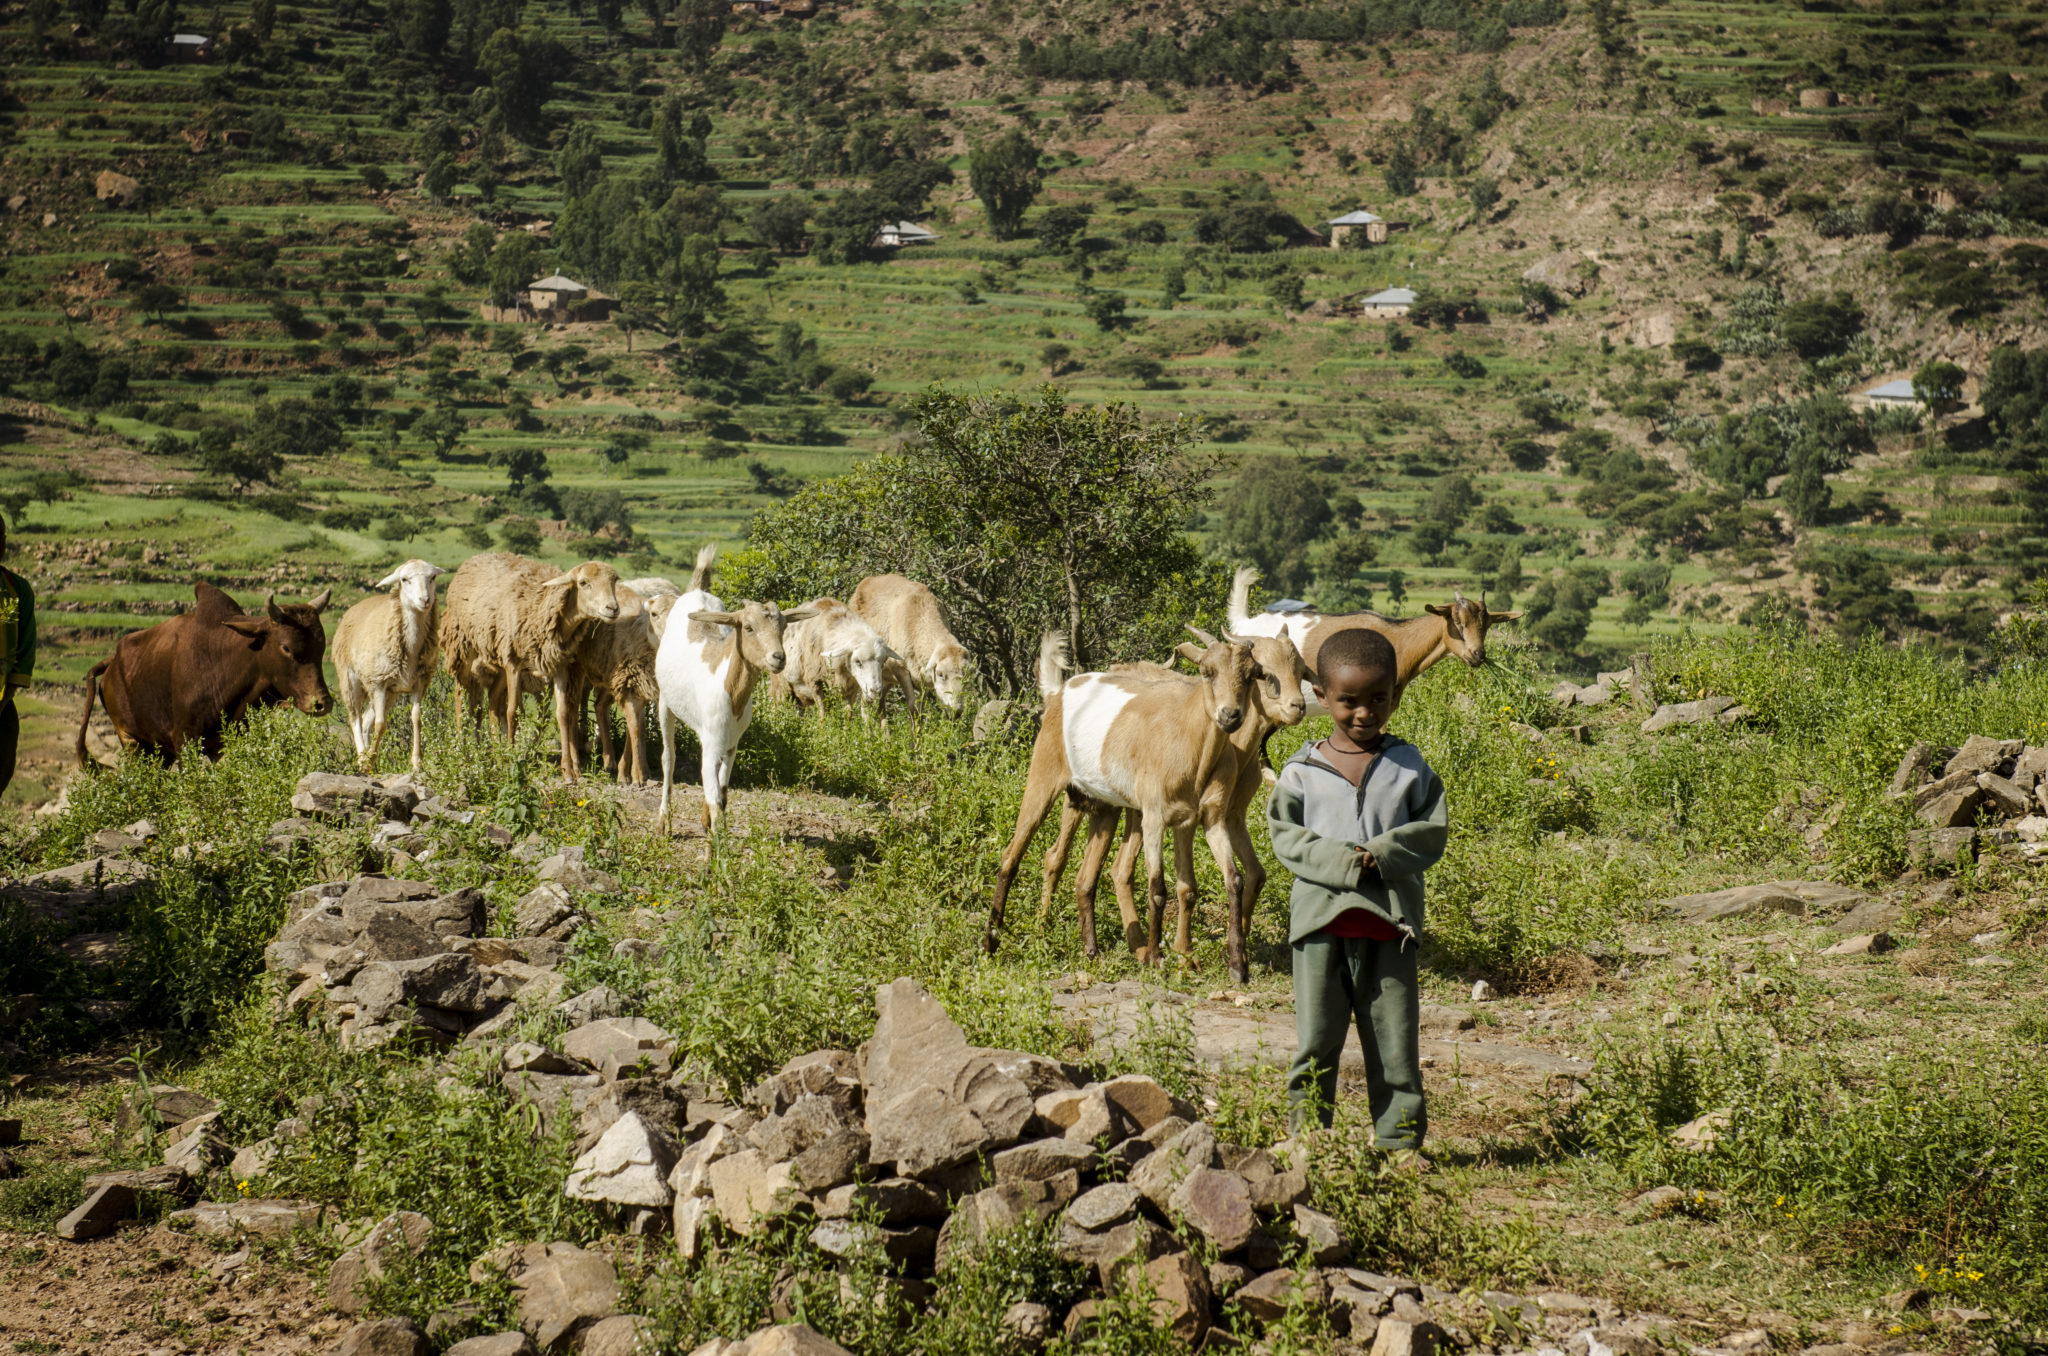 Things-to-do-in-Ethiopia-Goats-Work